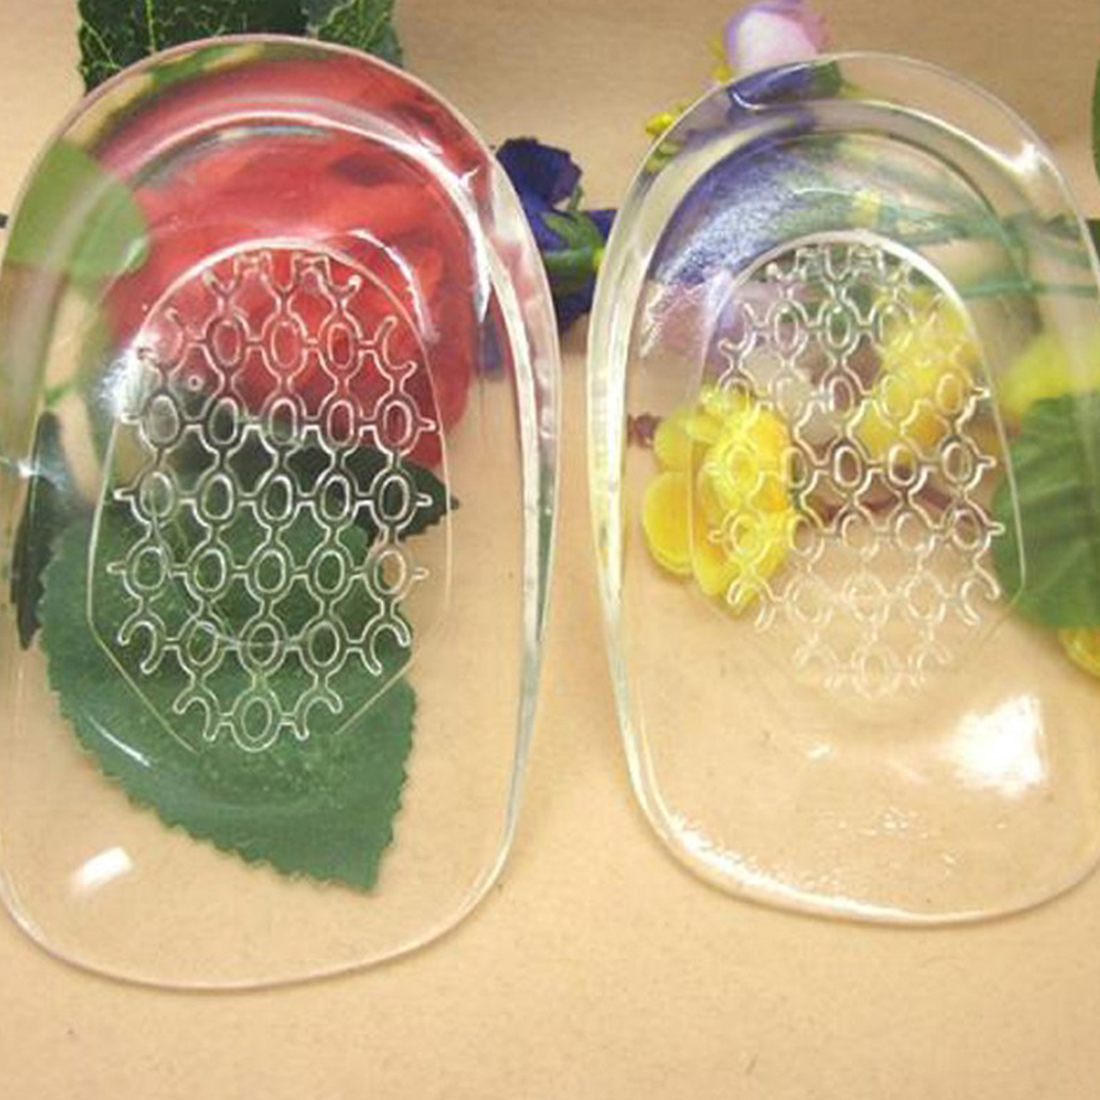 Invesible Tall 1 Pair Transparent Heel Shoes Insoles Massage Air Cushion Soft Silicone Gel Inserts Pads Foot Care Tool